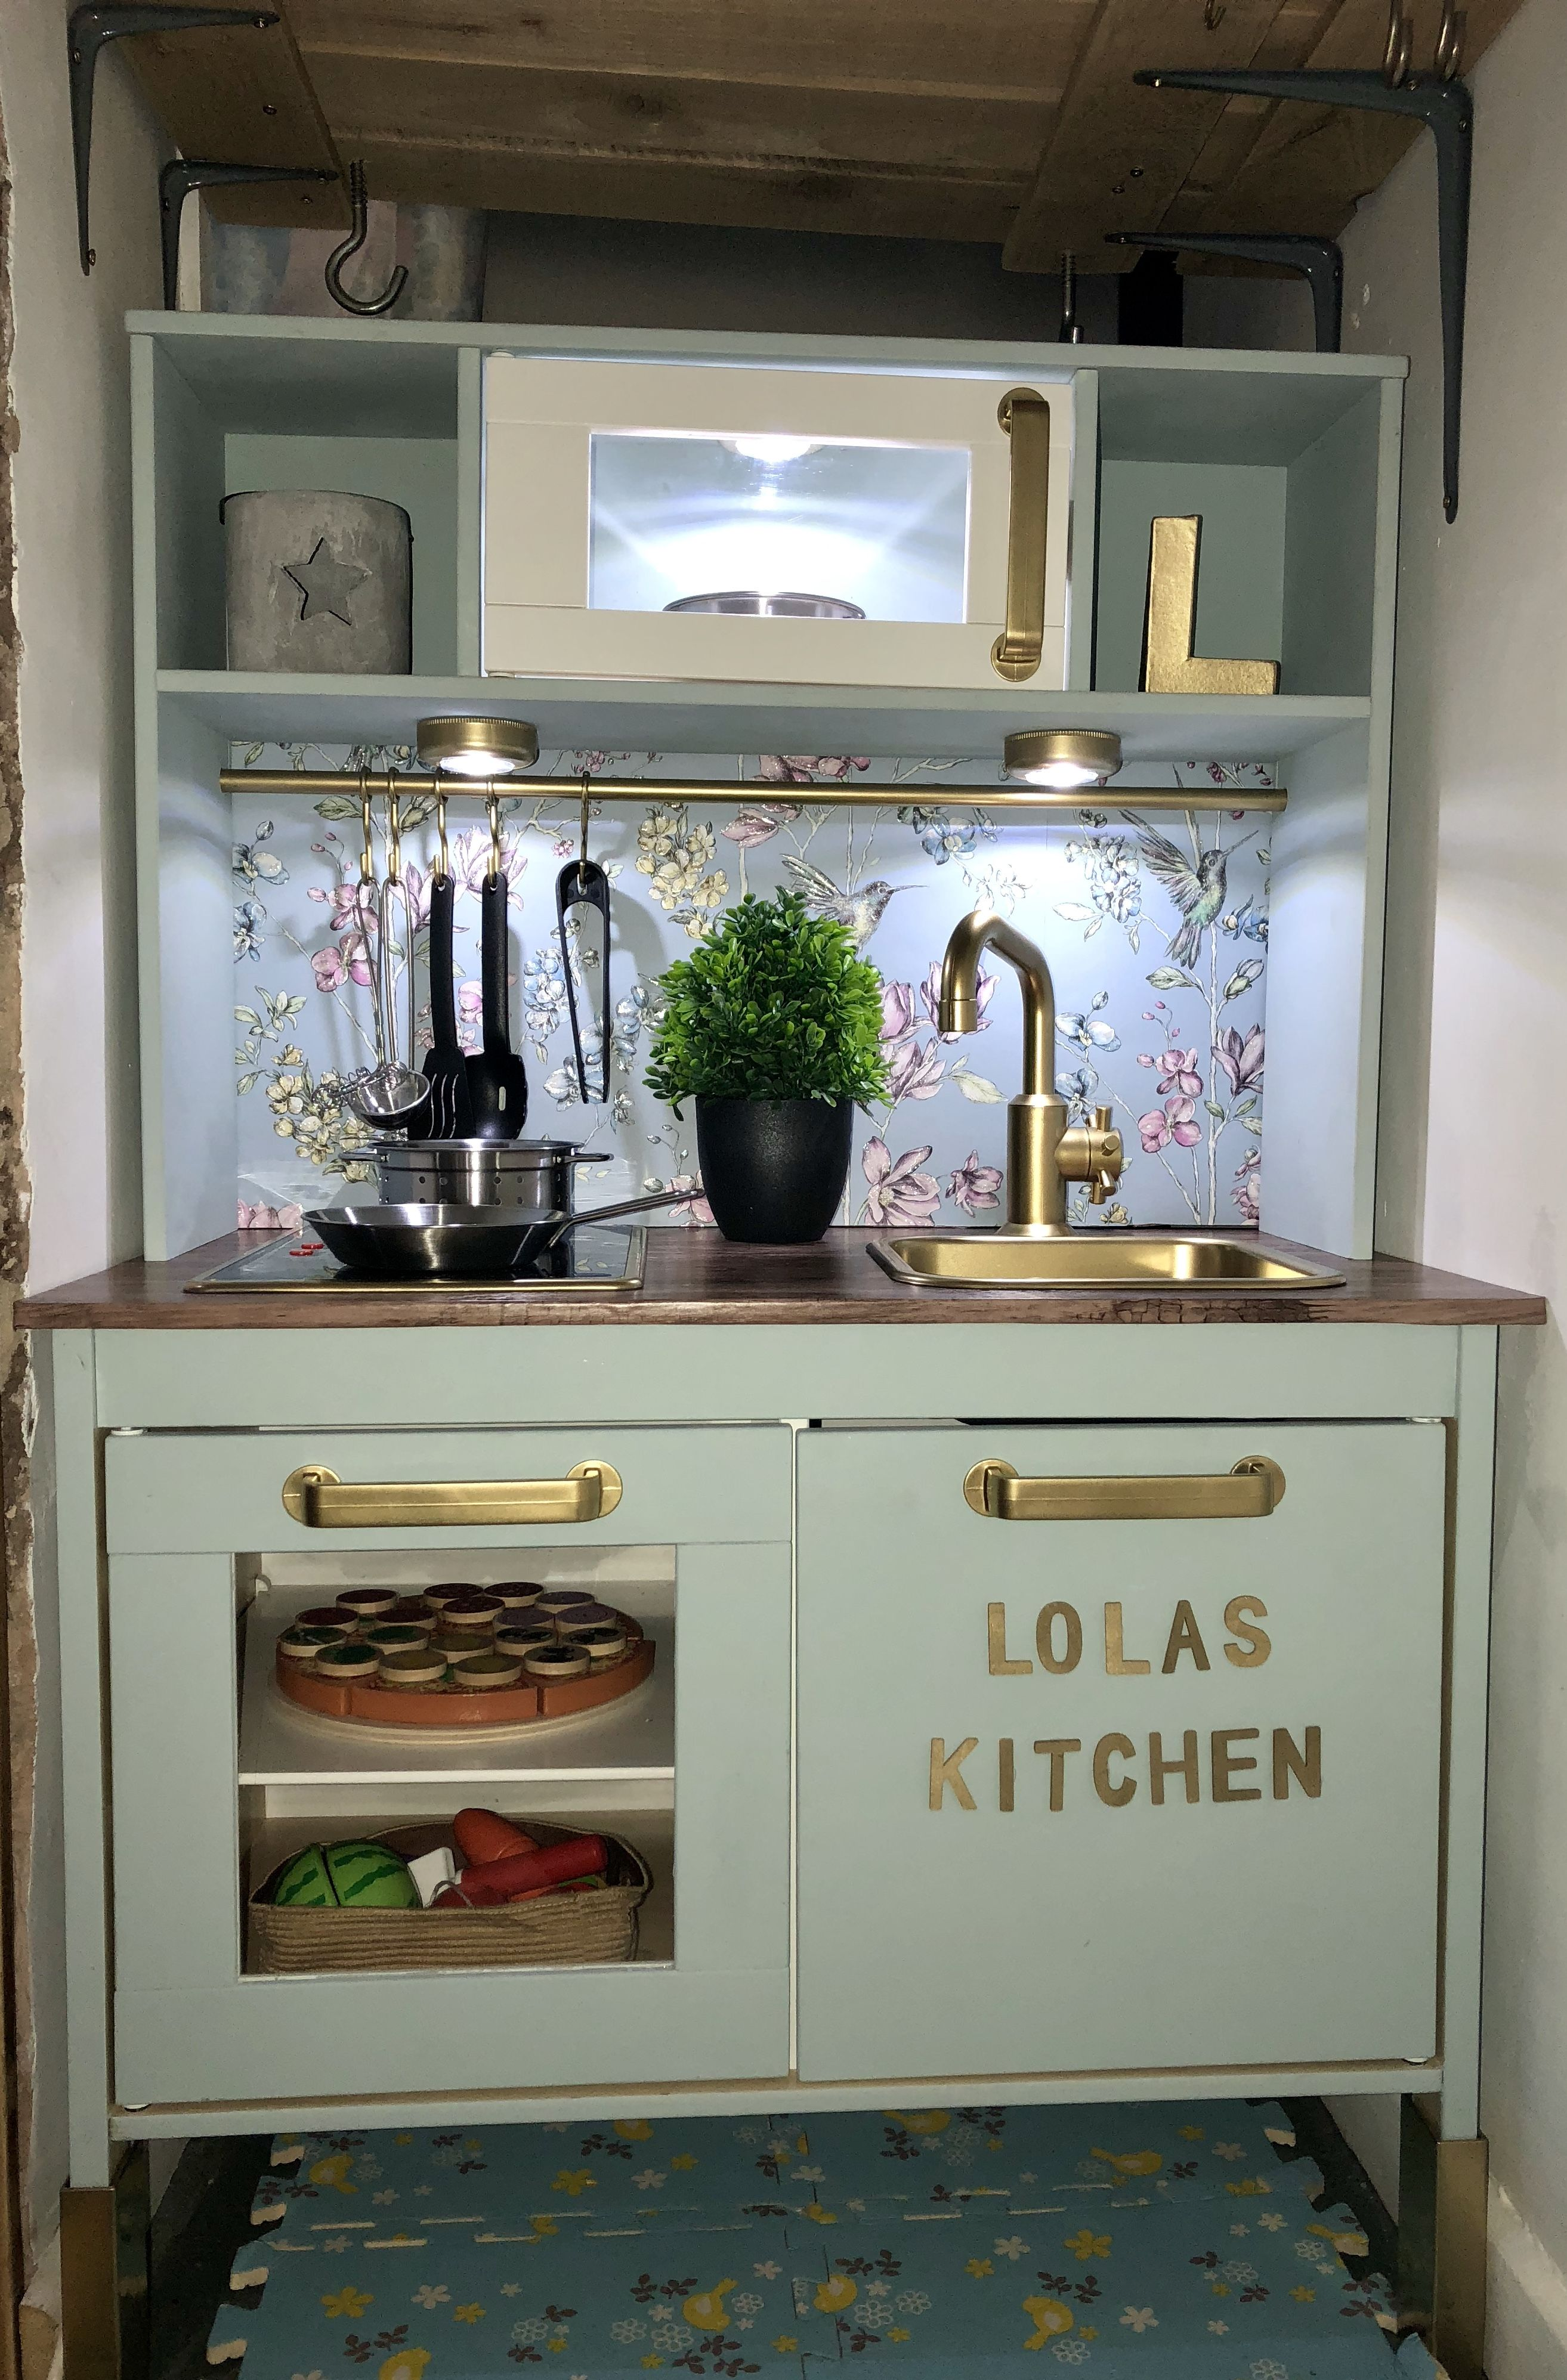 My ikea kitchen Duktig that we've hacked very pleased with